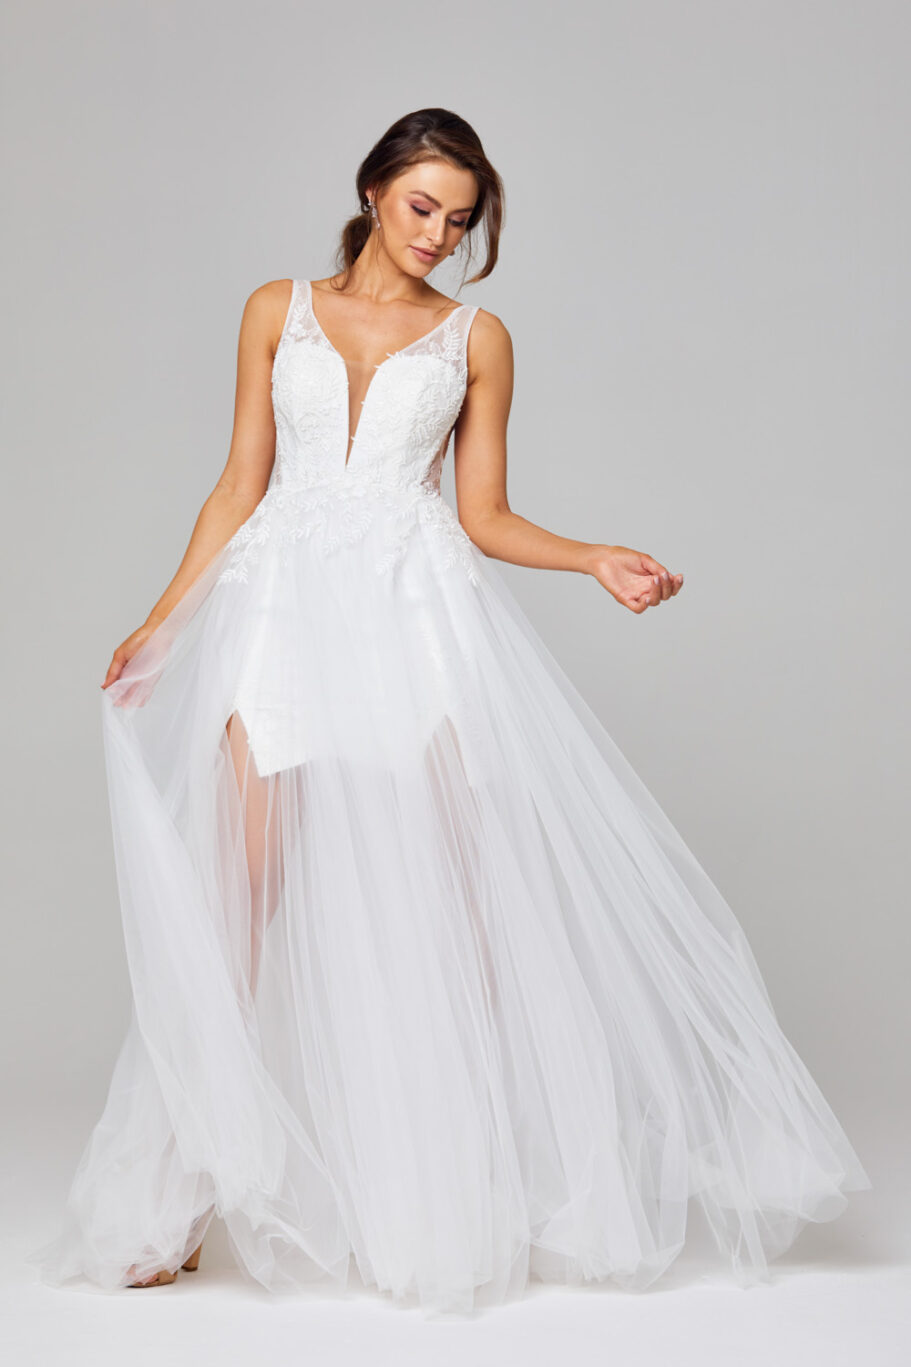 Arabella Plunging V-neck Wedding Dress - TC319 hero